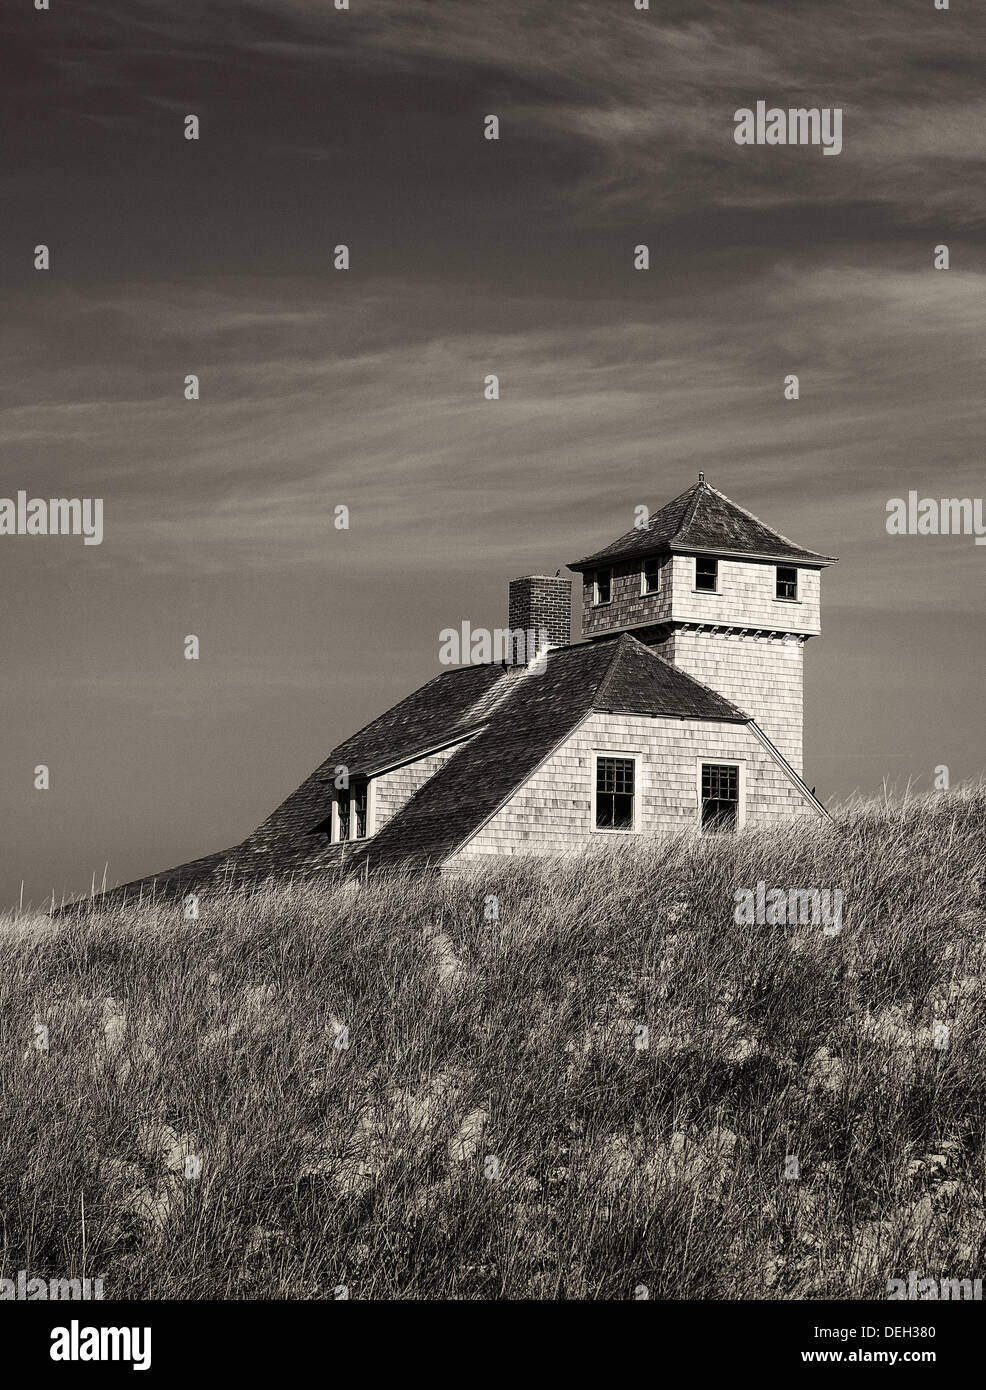 Secluded beach house nestled in the dune grass, Cape Cod, Massachusetts, USA - Stock Image